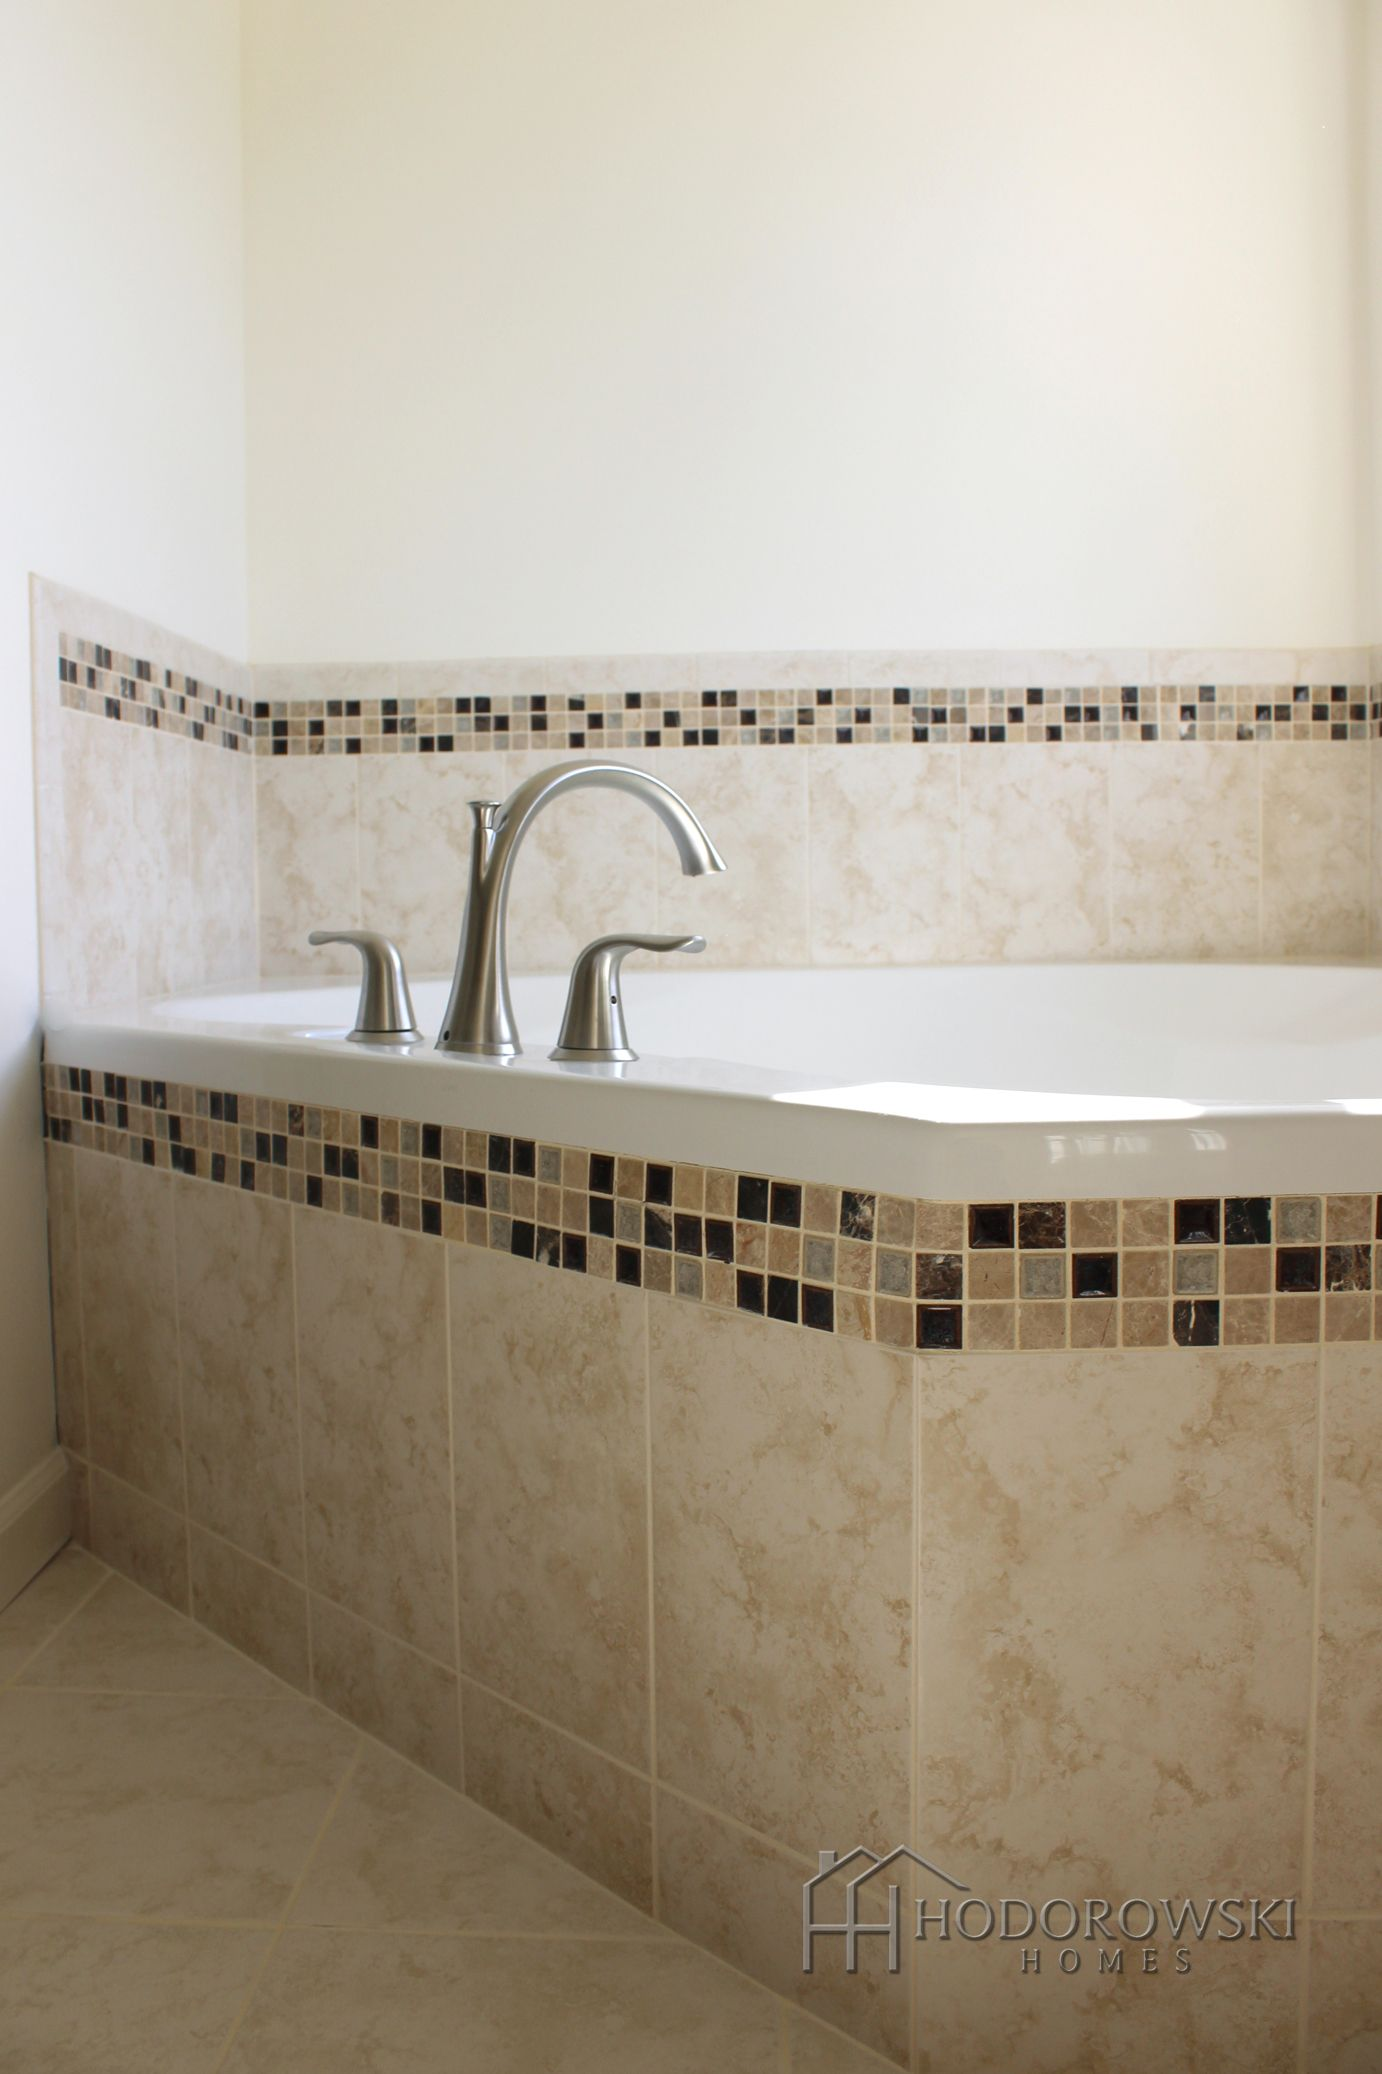 - This Beautiful Corner Garden Tub At Our Community In The Preserves